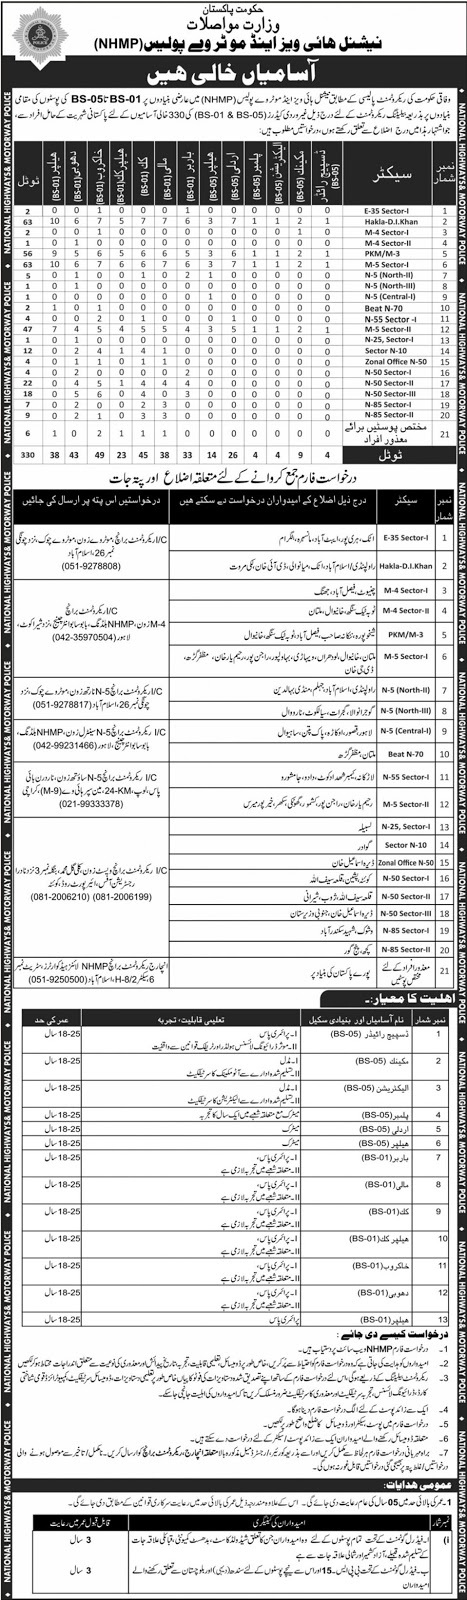 National Highways & Motorway Police NHMP Jobs (BPS-01 to BSP-05)